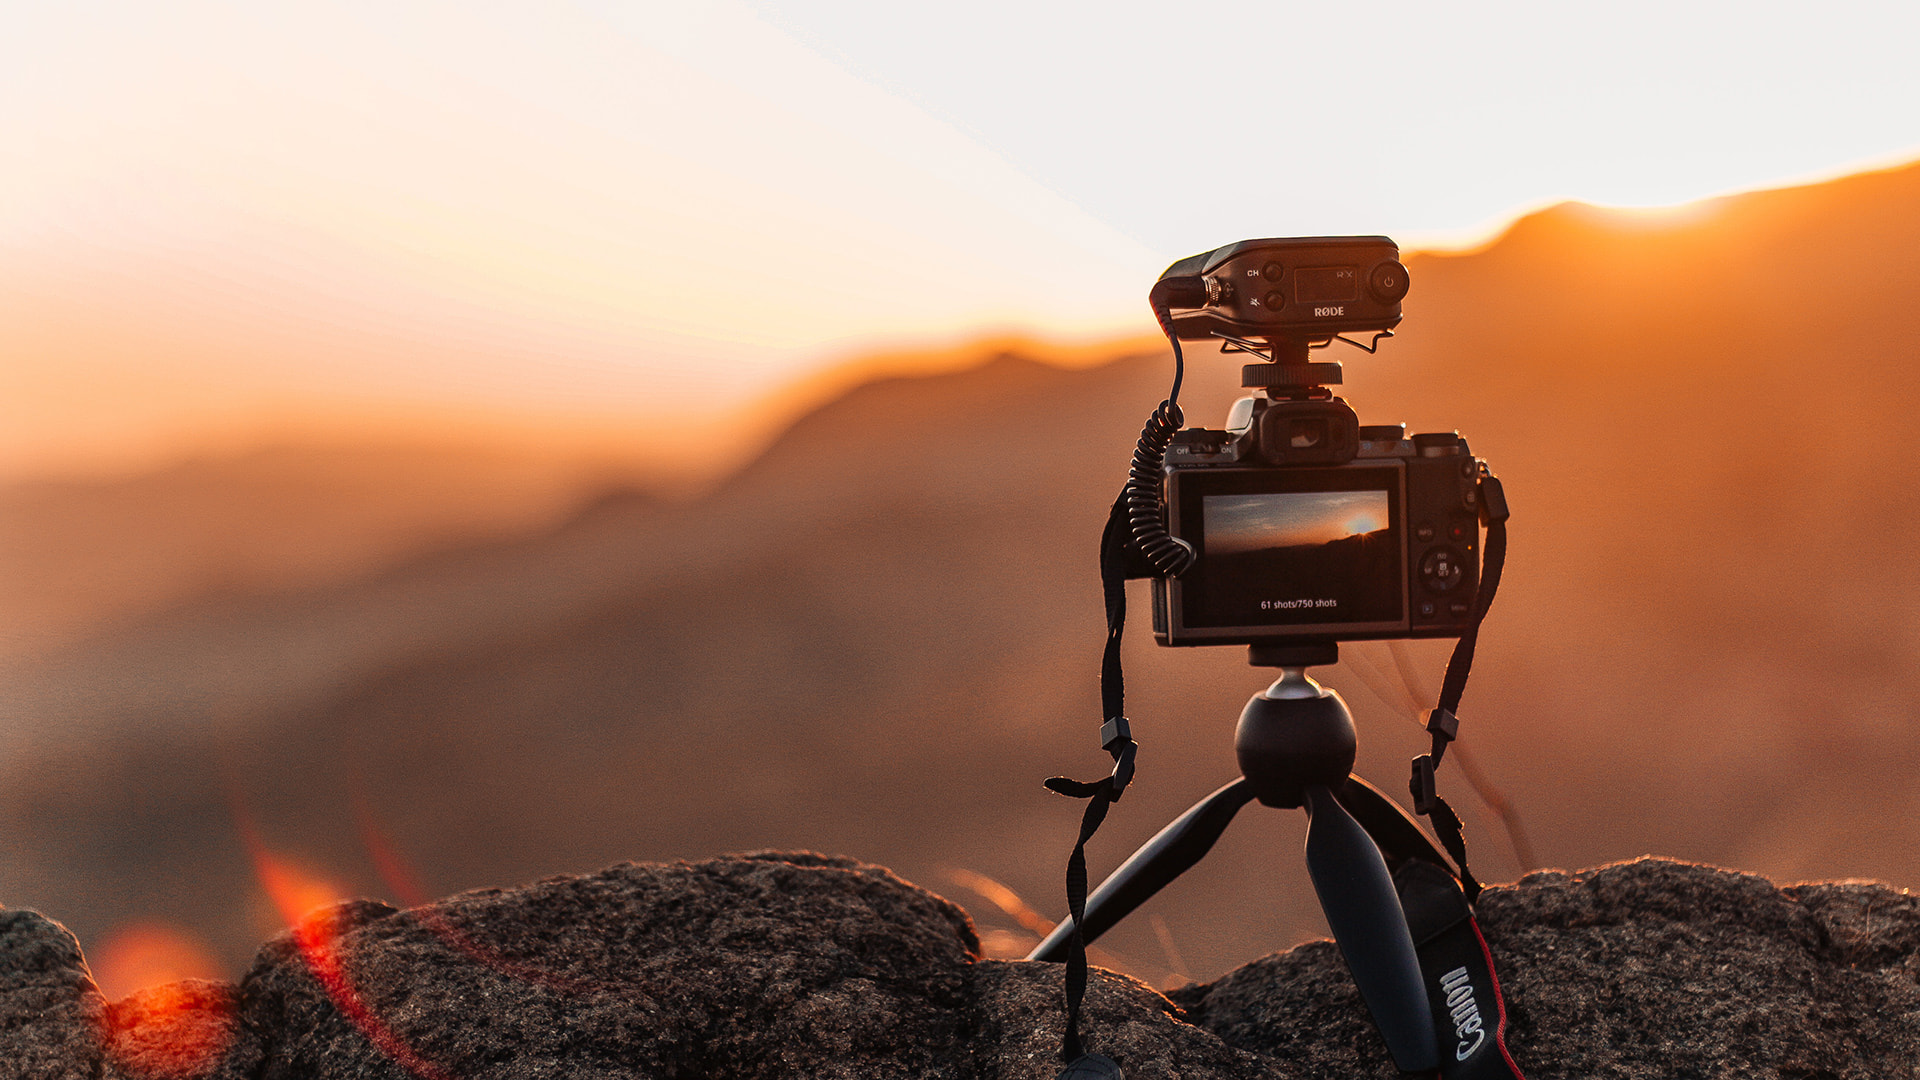 Camera on a tripod taking a photo of sunset